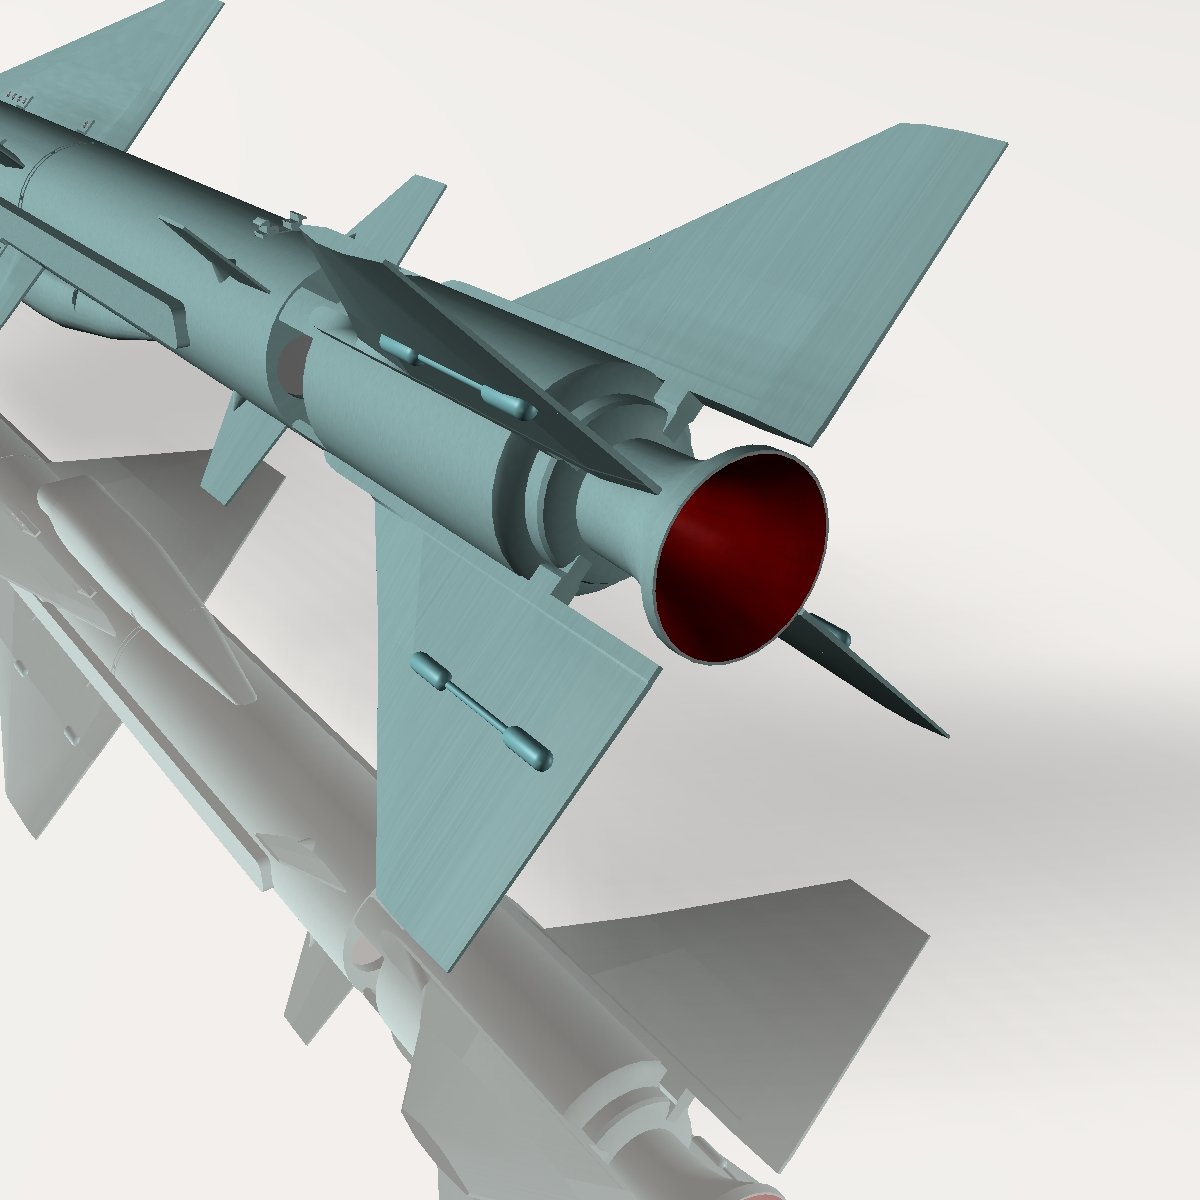 iranian qader cruise missile 3d model 3ds dxf x cod scn obj 149354